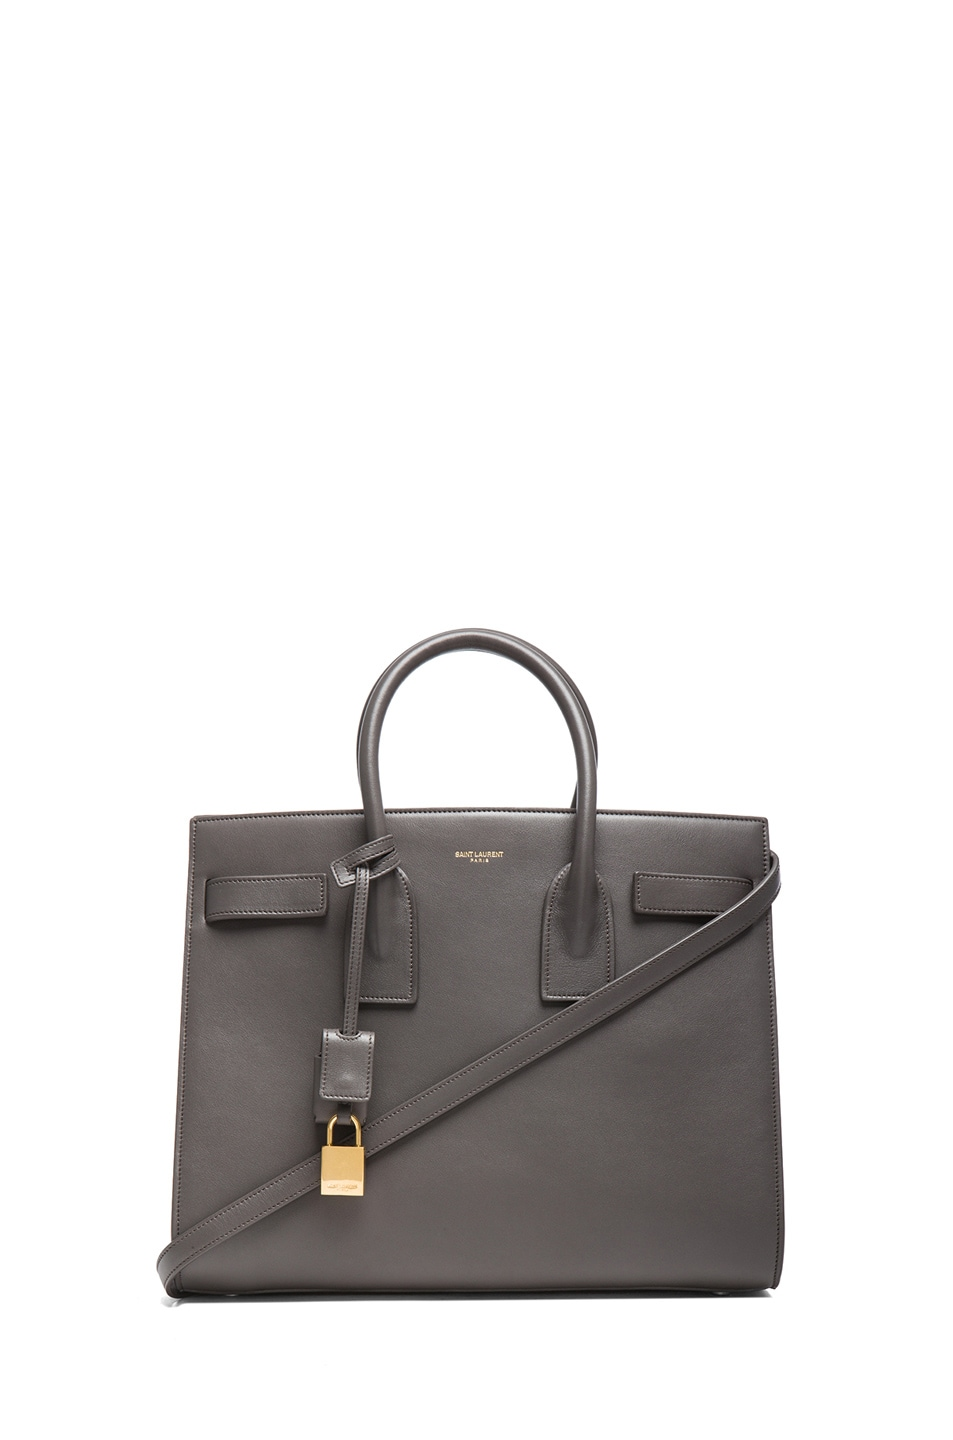 Image 1 of Saint Laurent Small Sac De Jour Carryall Bag in Earth